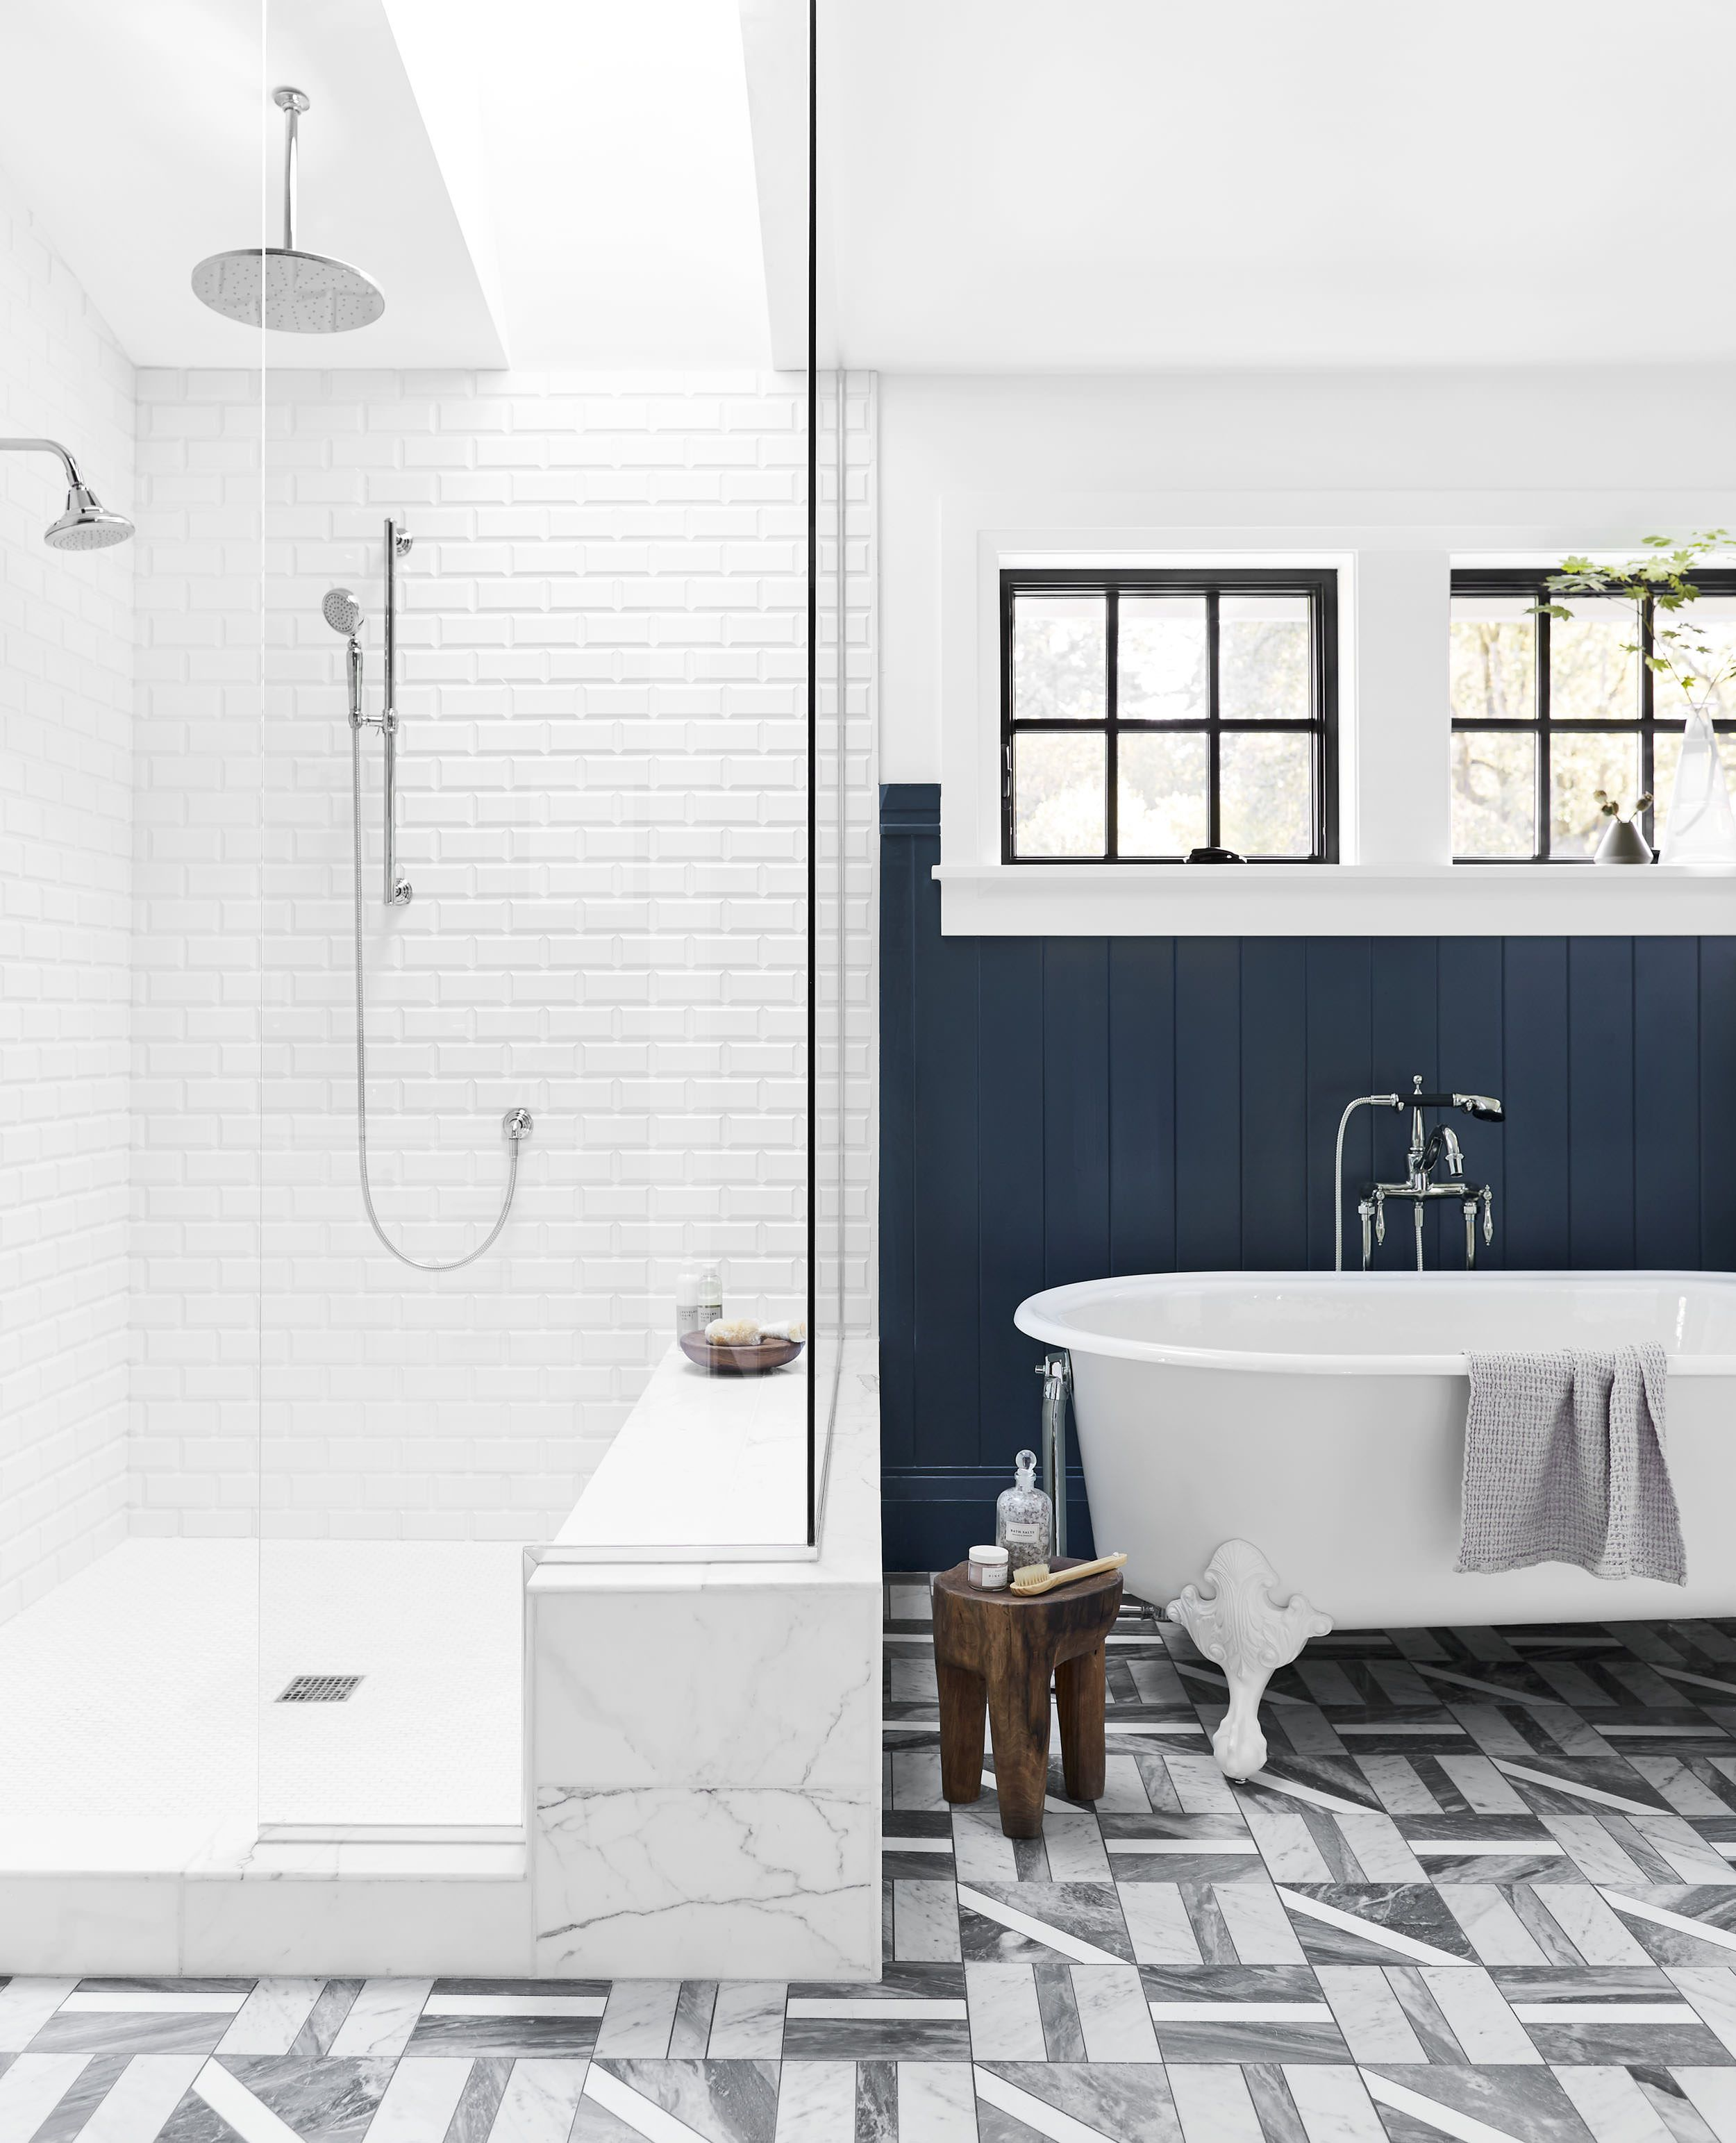 Courtesy of Sara Tramp for Emily Henderson Designs. Choose subway tile